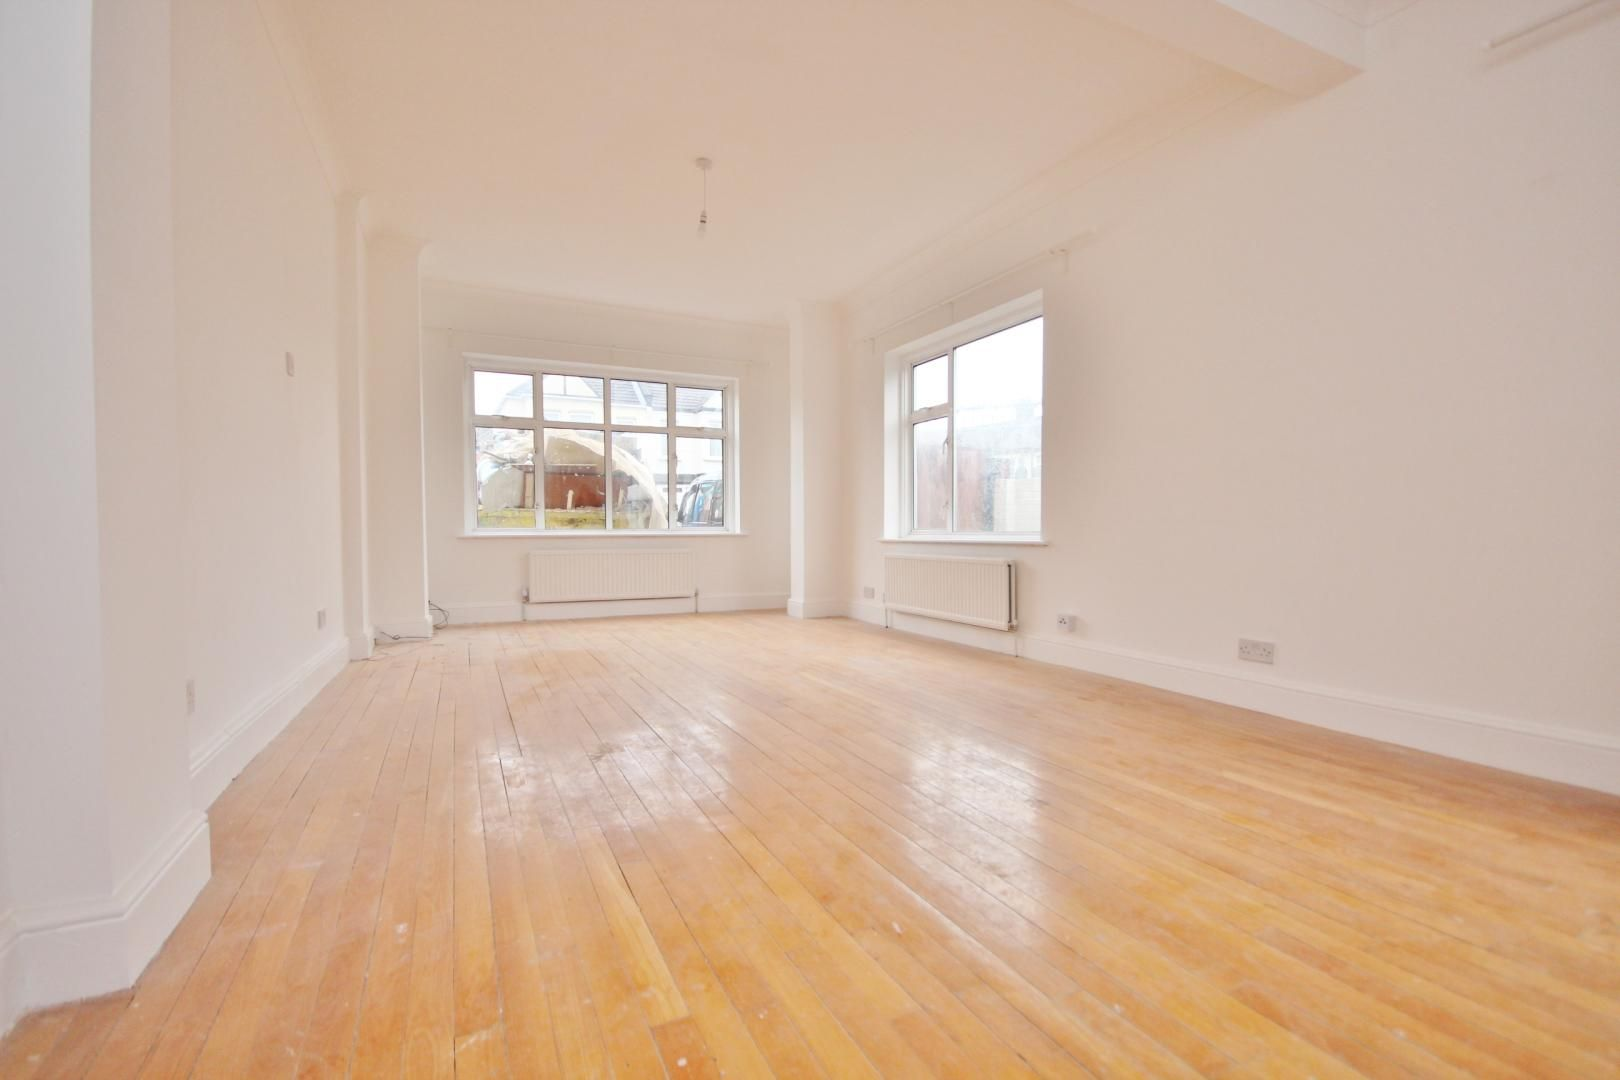 1 bed  to rent in Aldborough Road South - Property Image 1